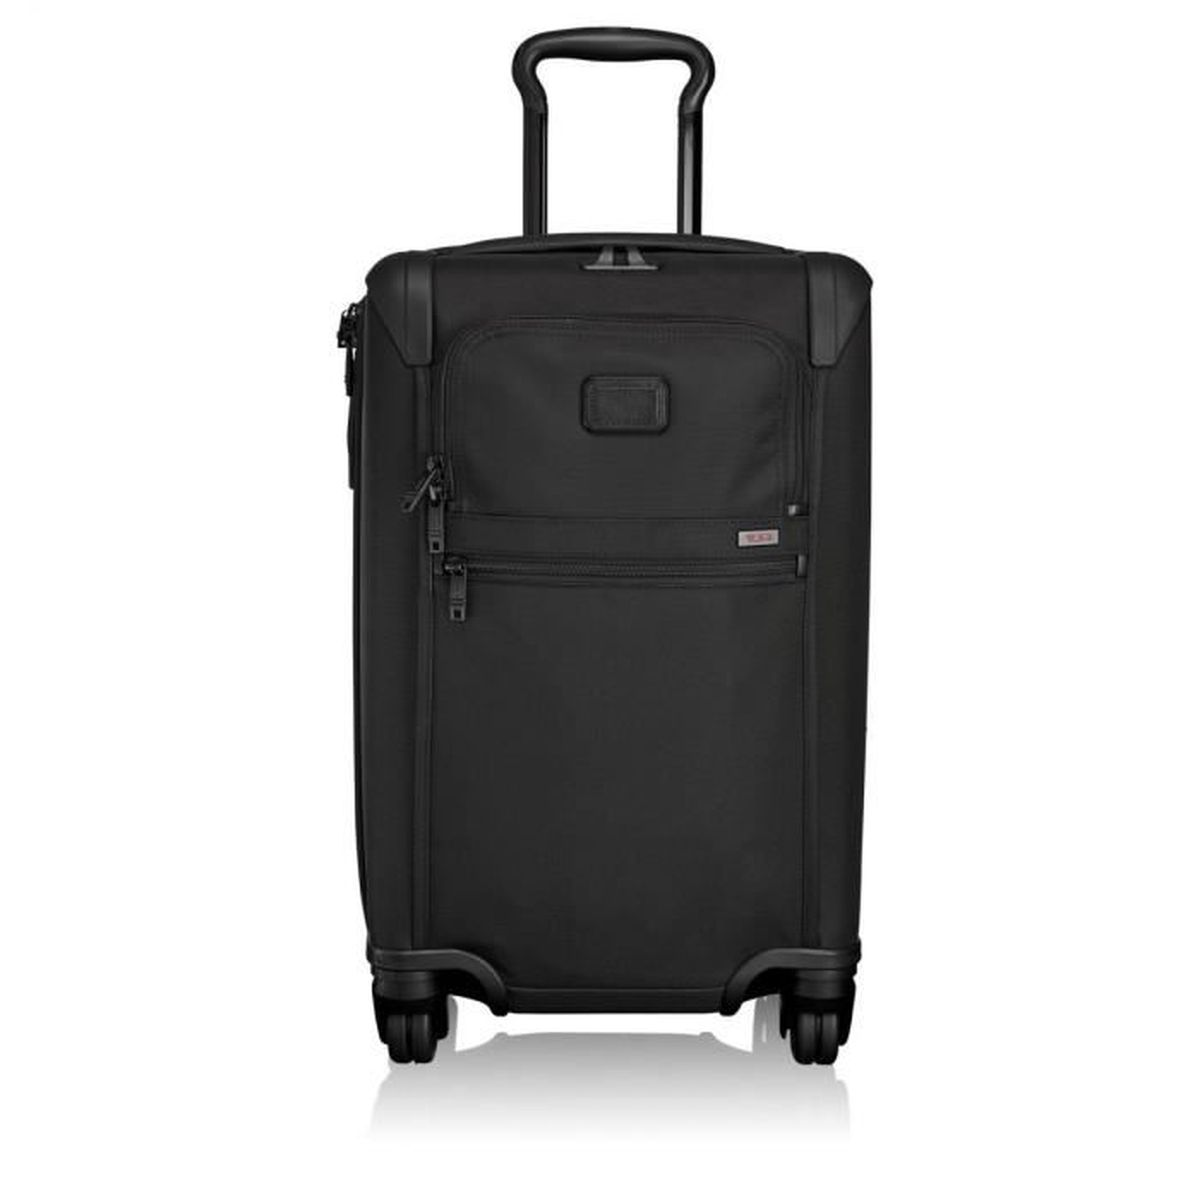 tumi bagage main international extensible 022060 noir taille 56 cm achat vente valise. Black Bedroom Furniture Sets. Home Design Ideas